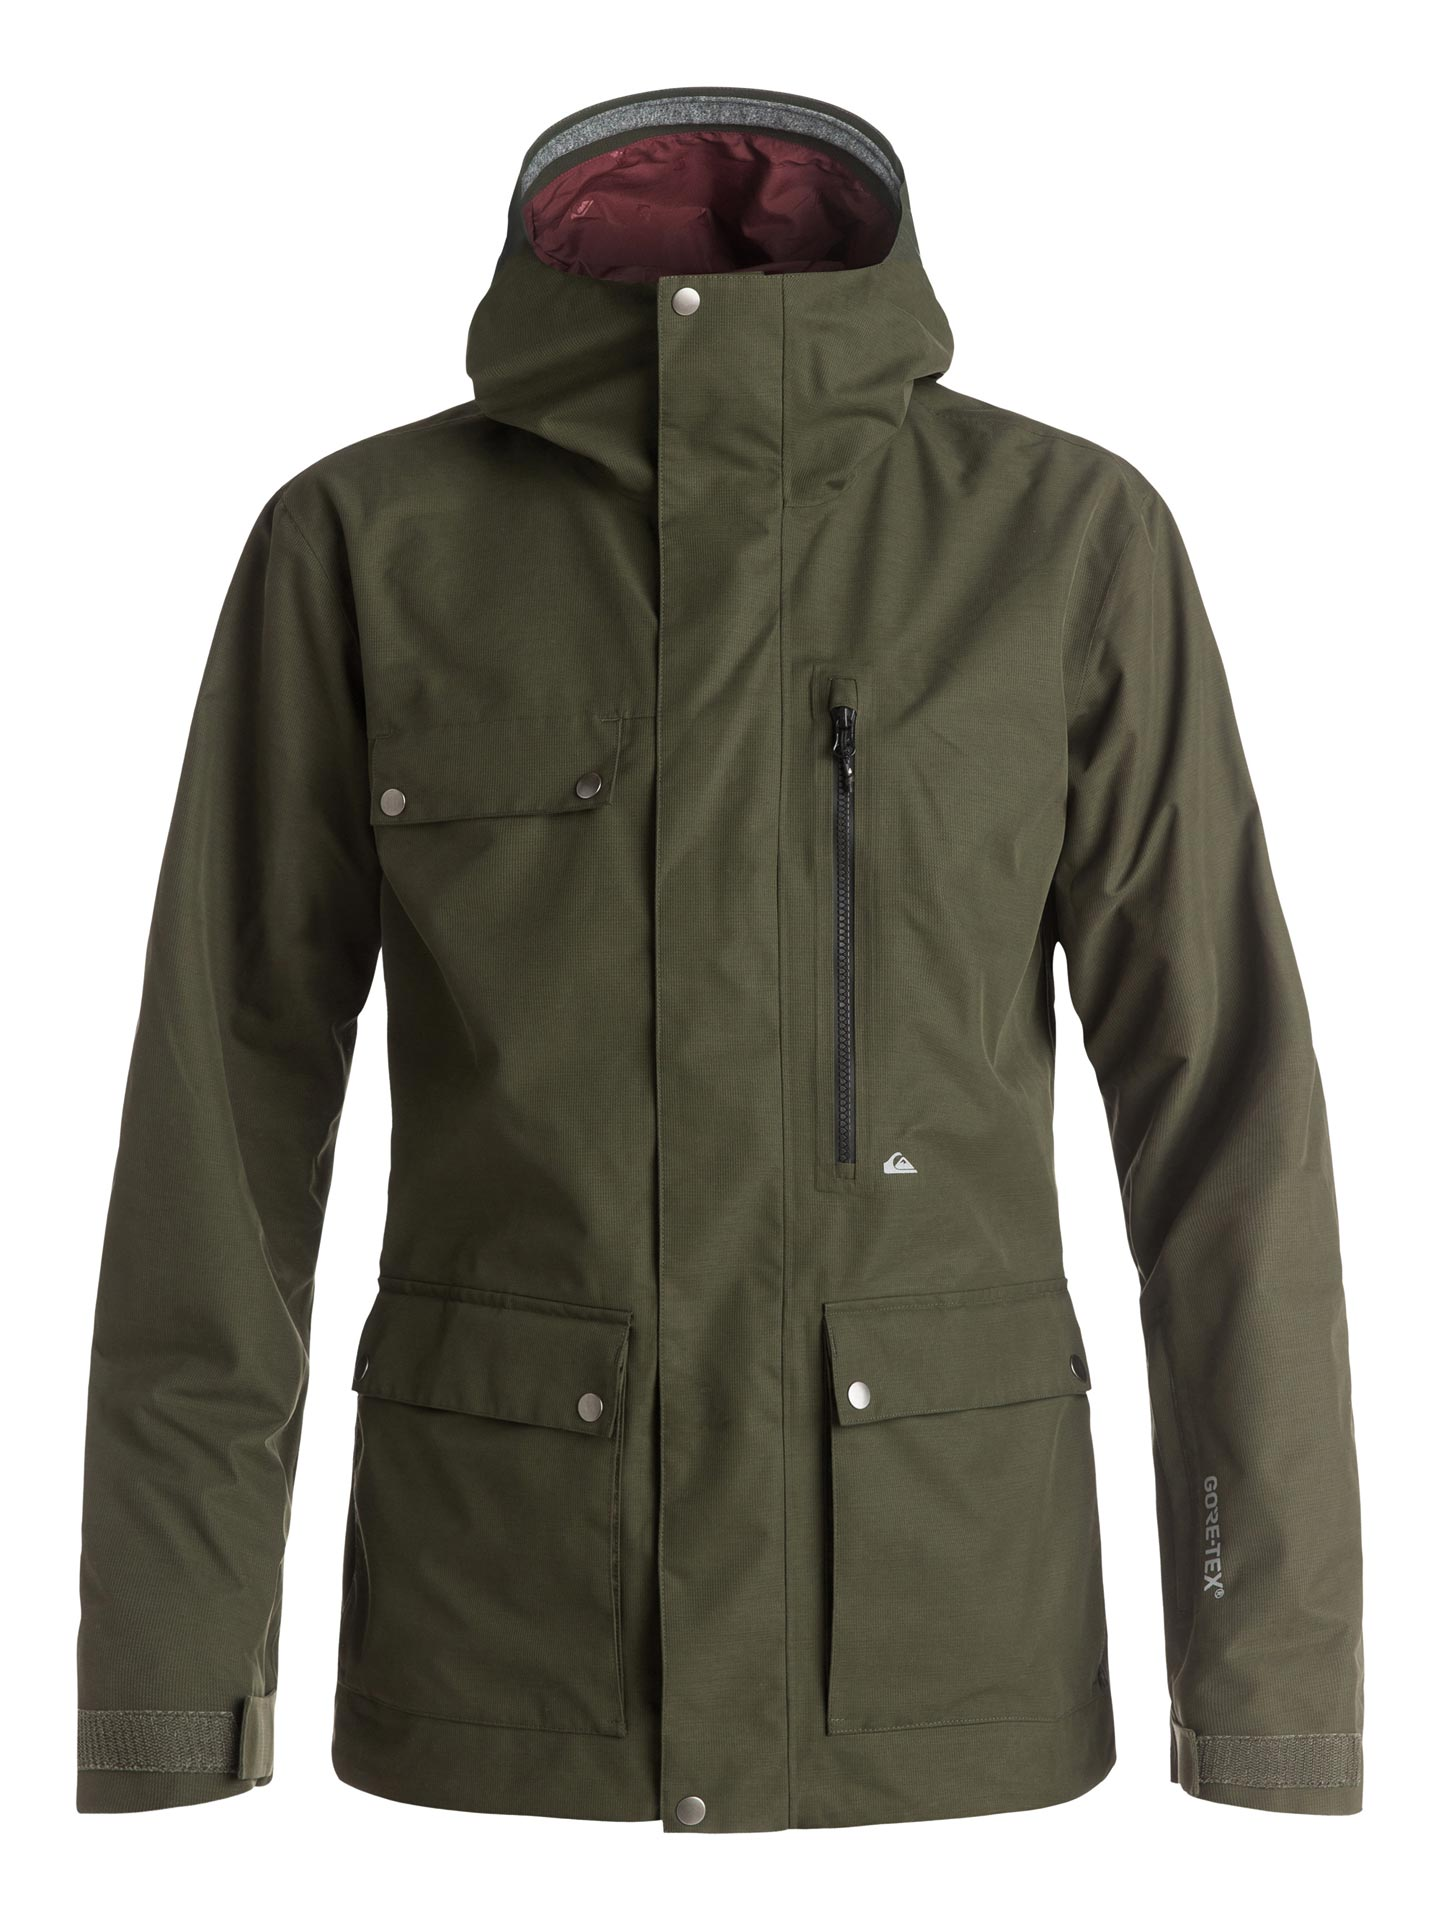 Quiksilver: Southwood Gore-Tex Jacket (Front)